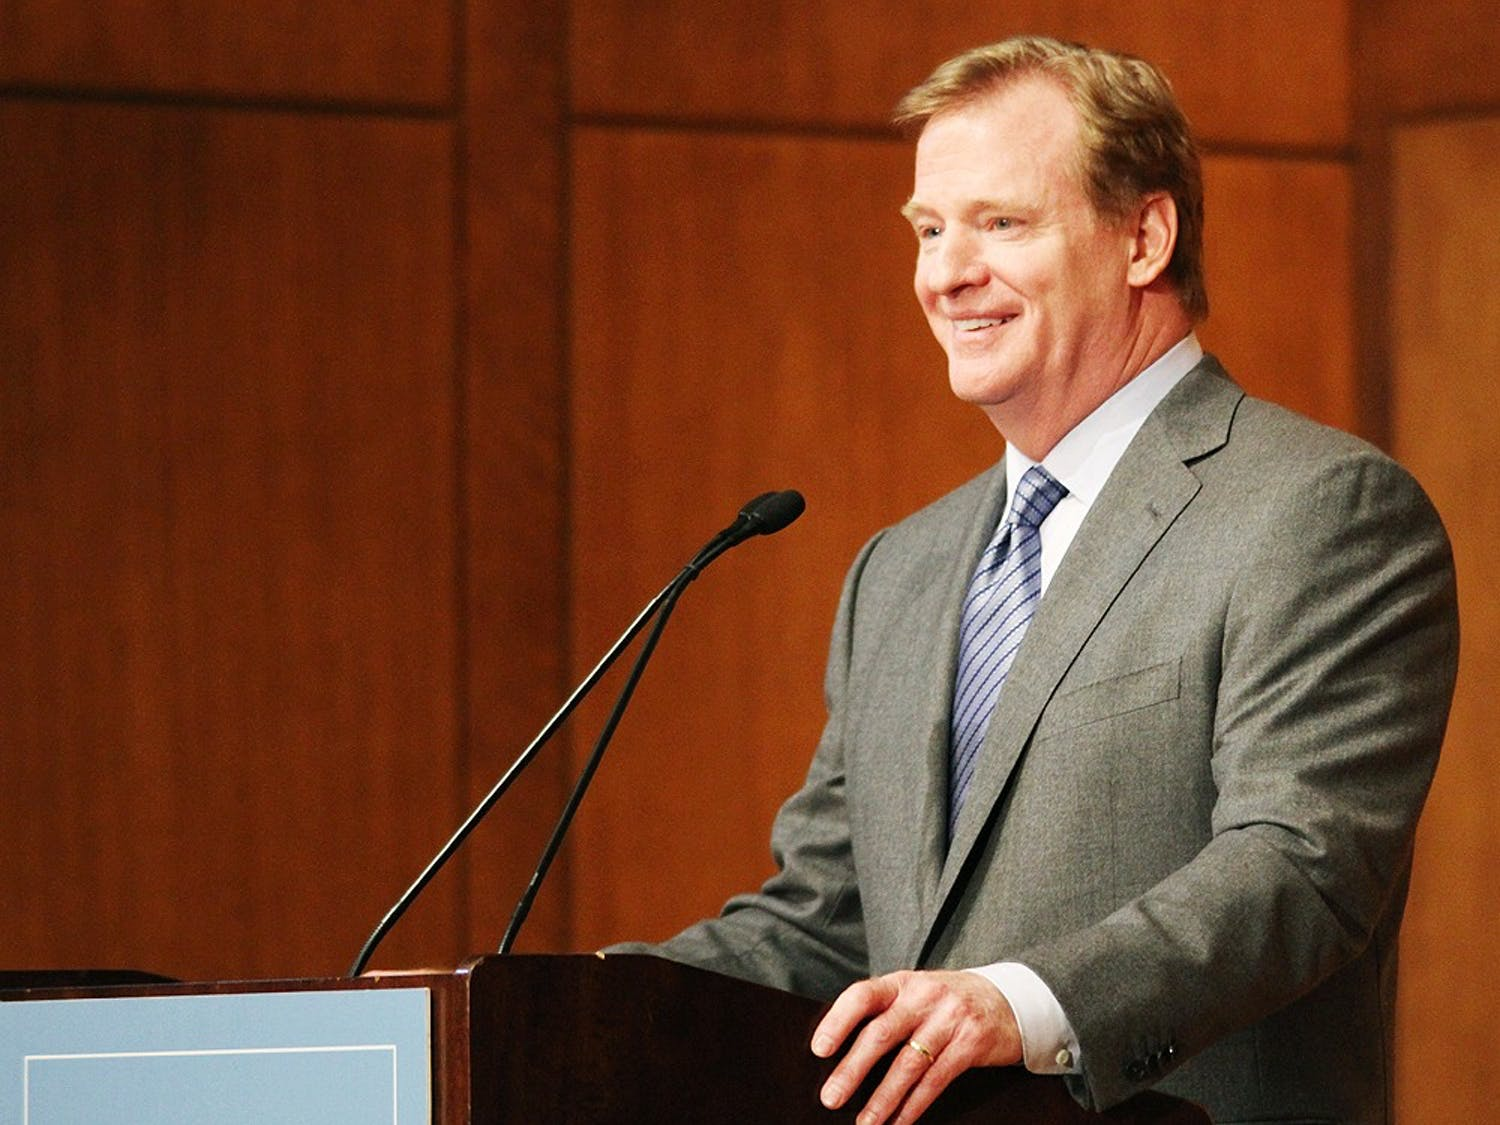 NFL commissioner Roger Goodell came to UNC's campus as a guest speaker at the 2013 Carl Blythe Lecture hosted by the the Department of Exercise and Sport Science. Goodell spoke about concussions and football safety before answering questions from the audience.